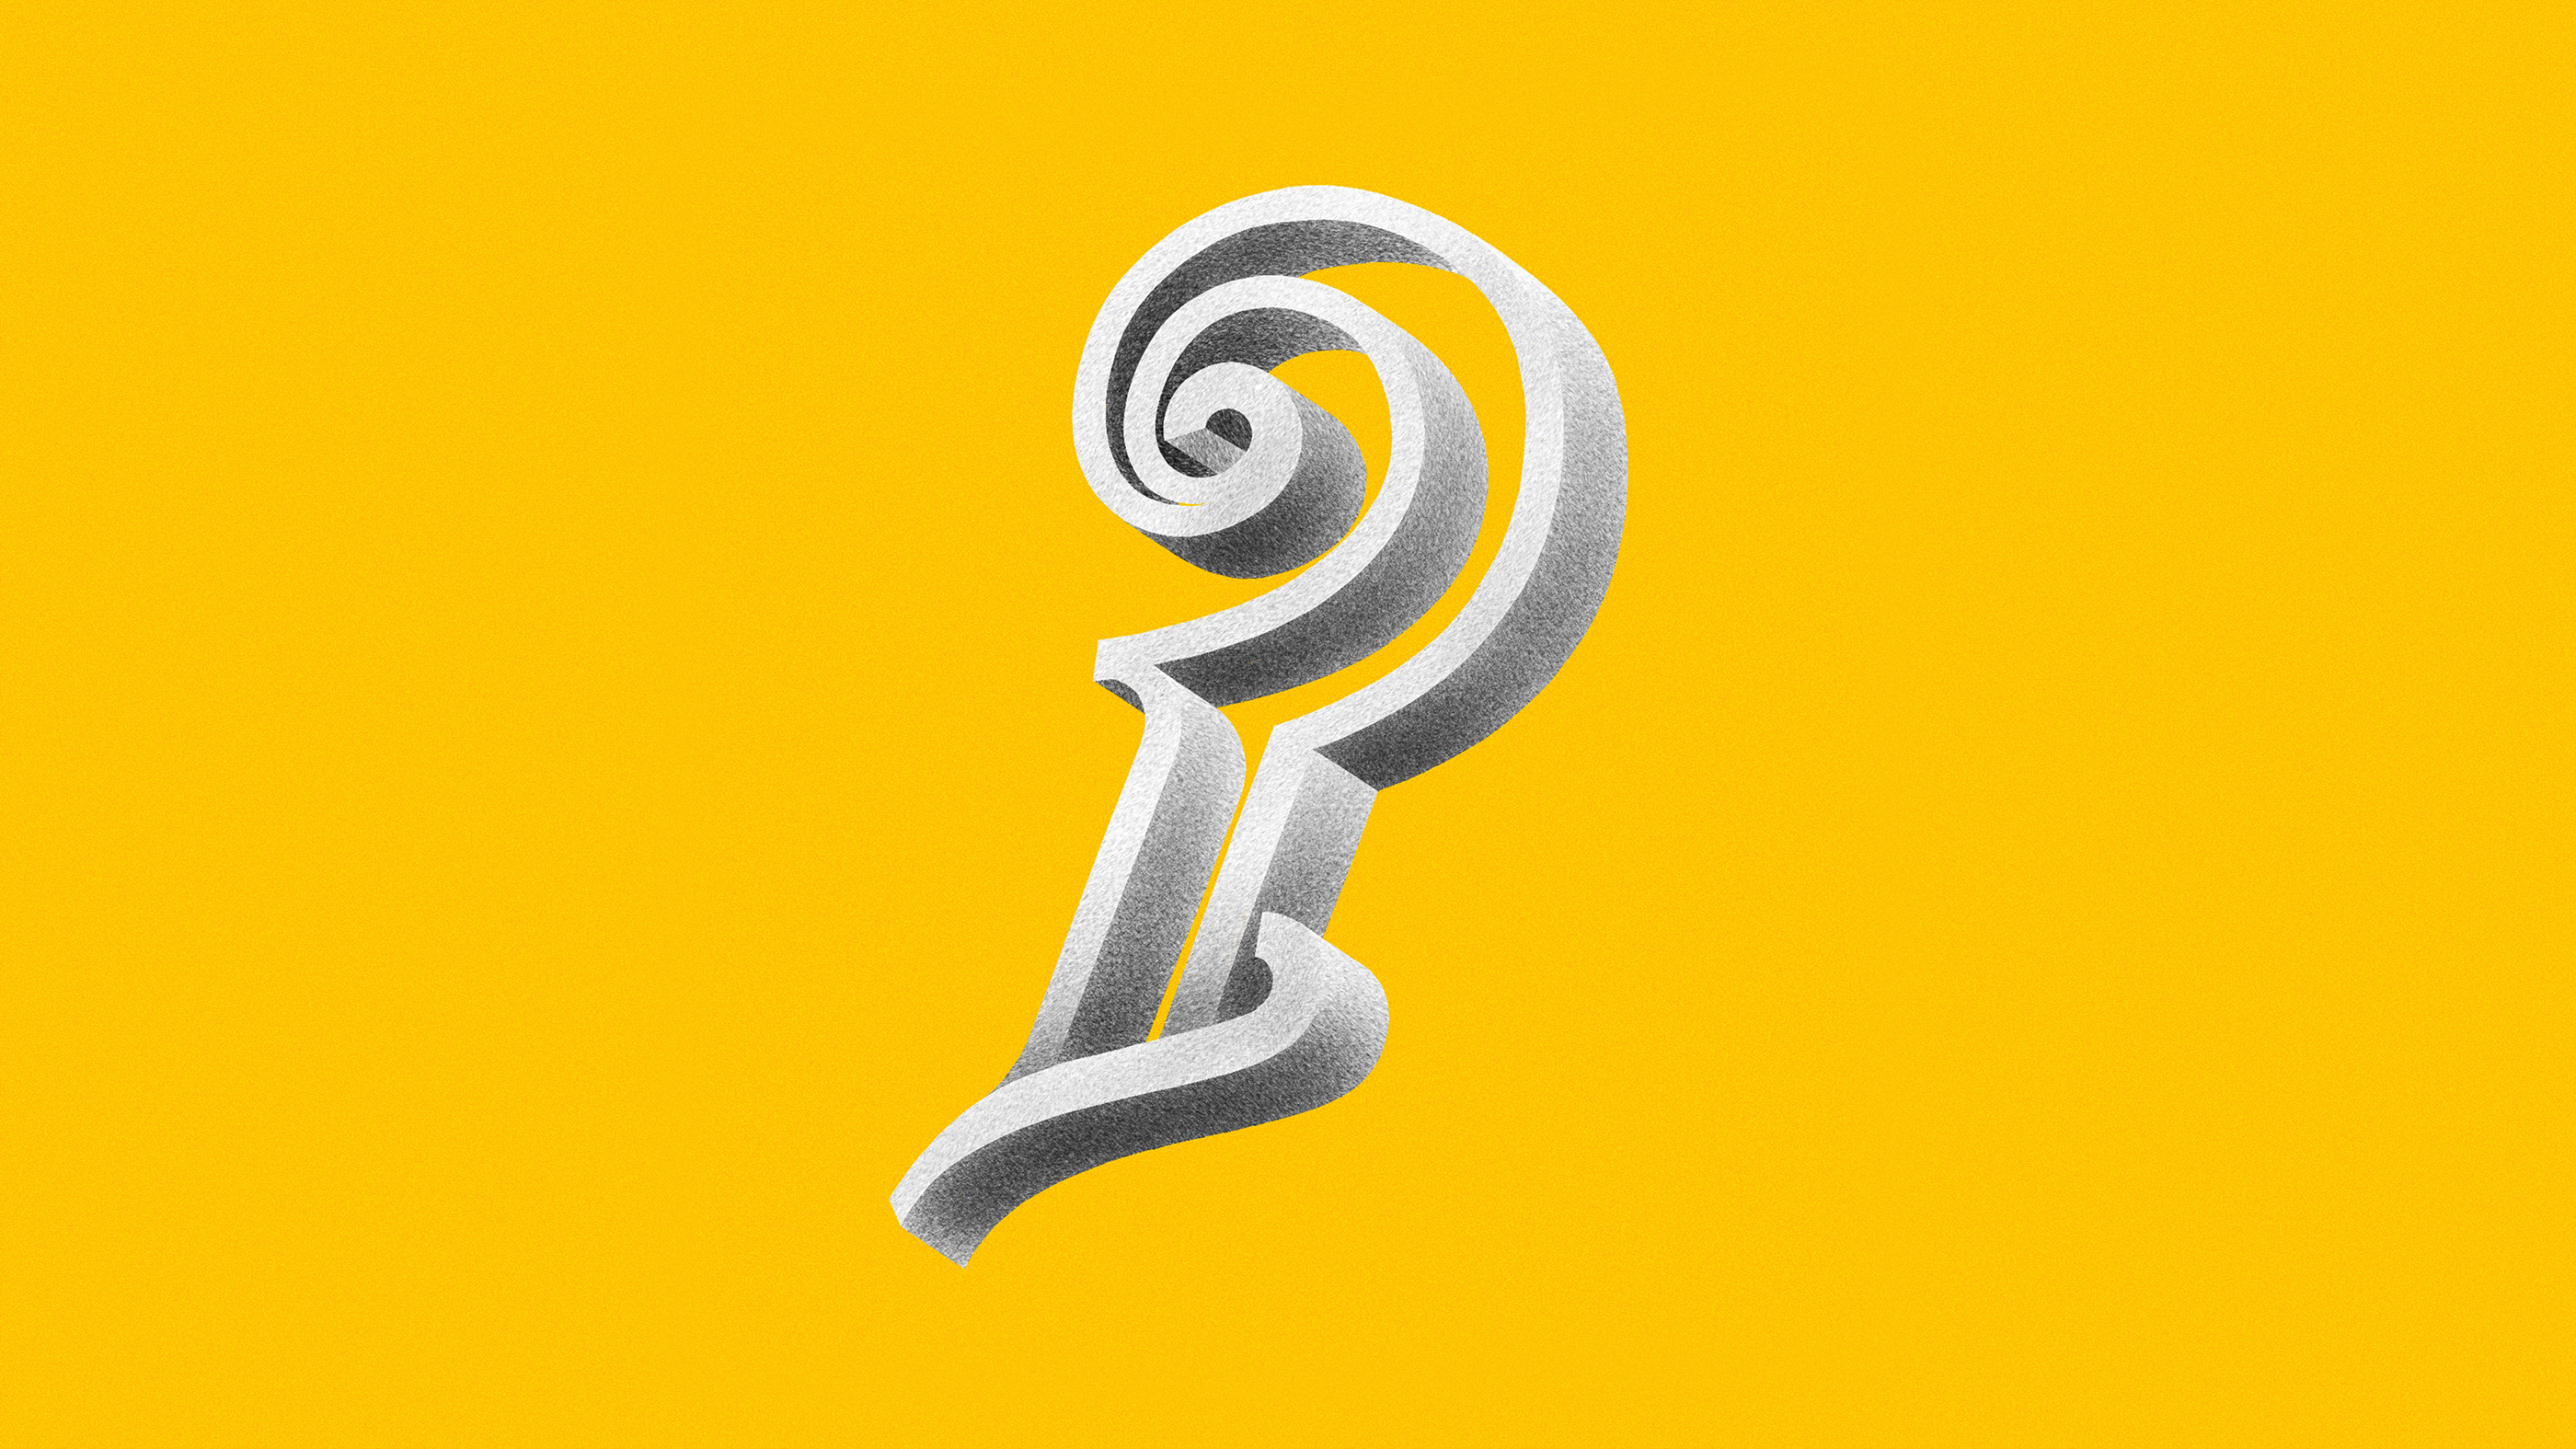 Letter P 126 Daily Ipad Letterings Collection On Behance By De2s Ipad Lettering Lettering Creative Typography